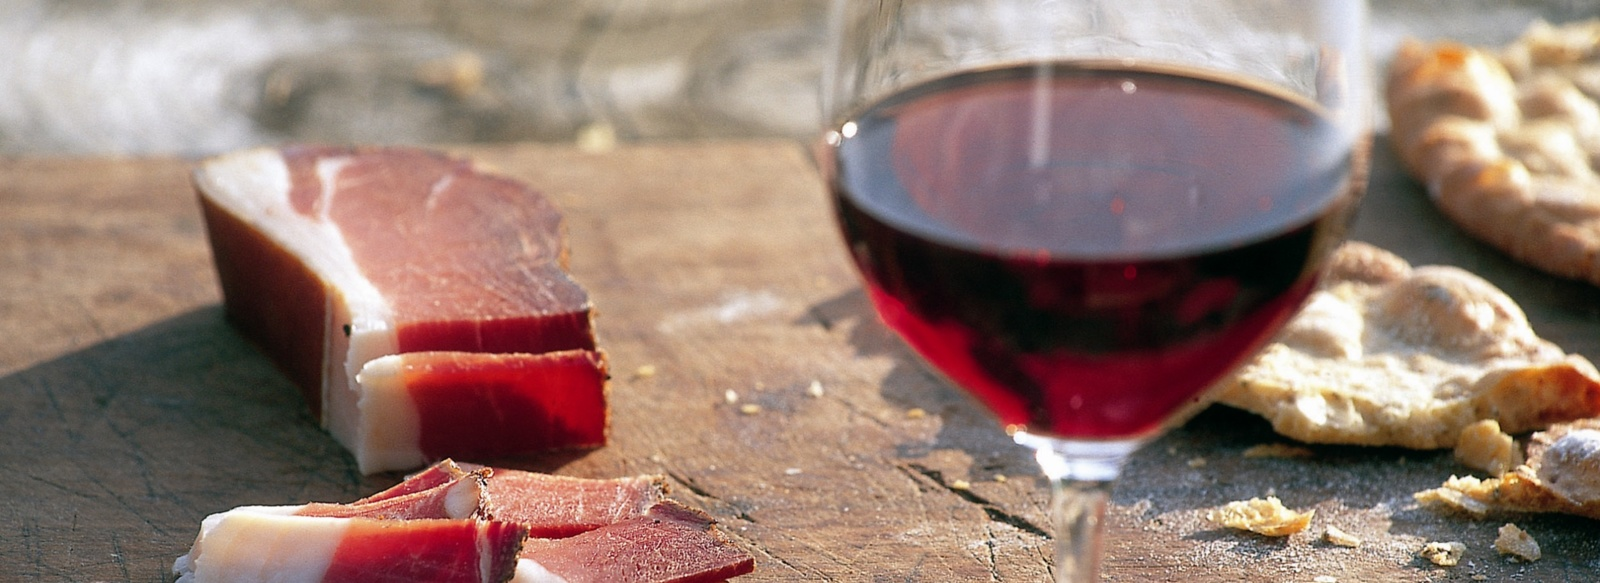 Speck and wine are south Tyrolean products - Merano